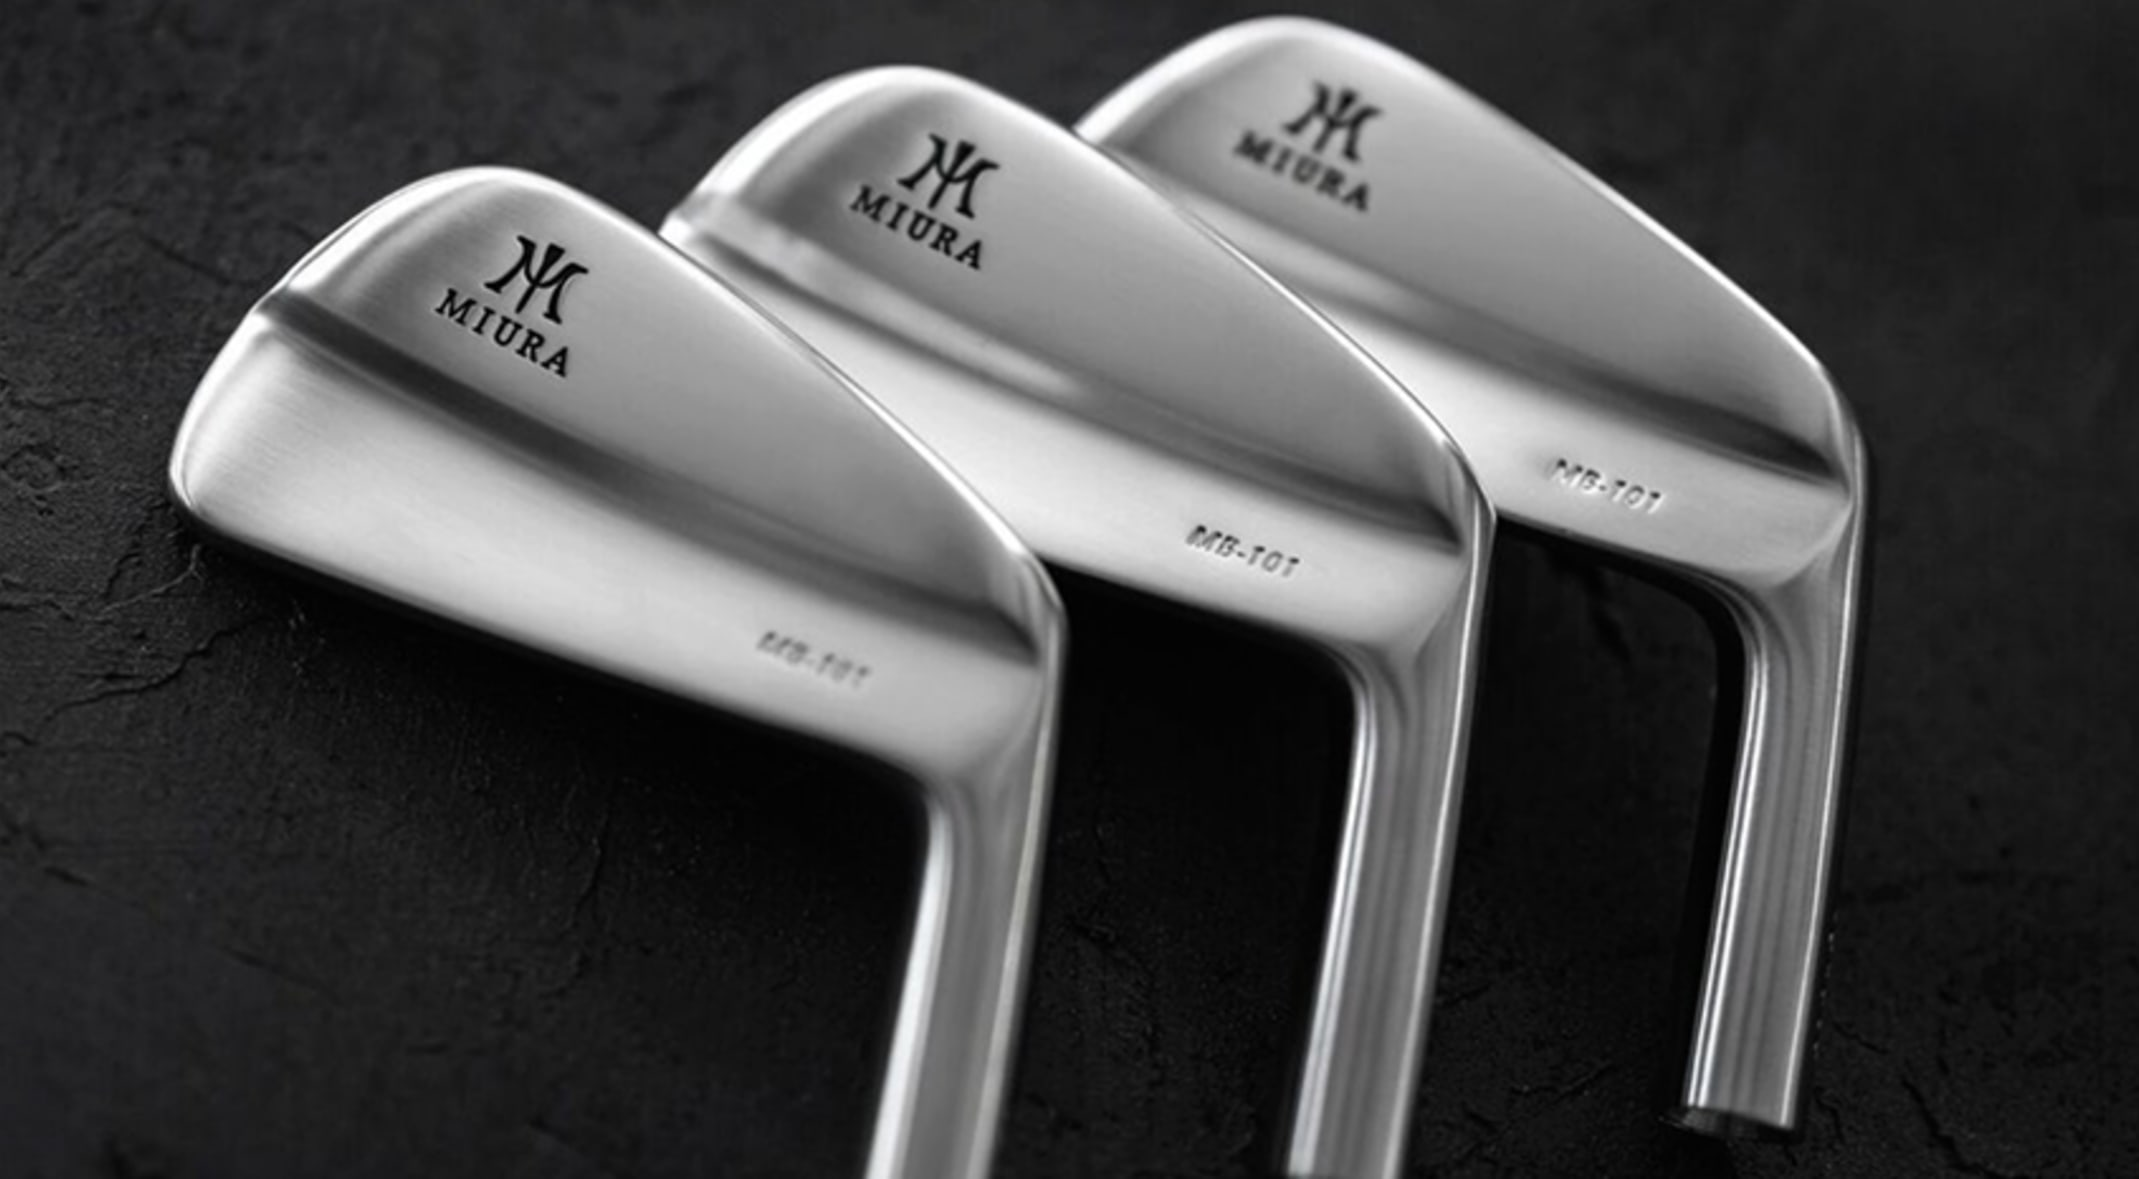 Miura Introduces New Mb 101 Irons The Company S First New Blade Irons Since 2013